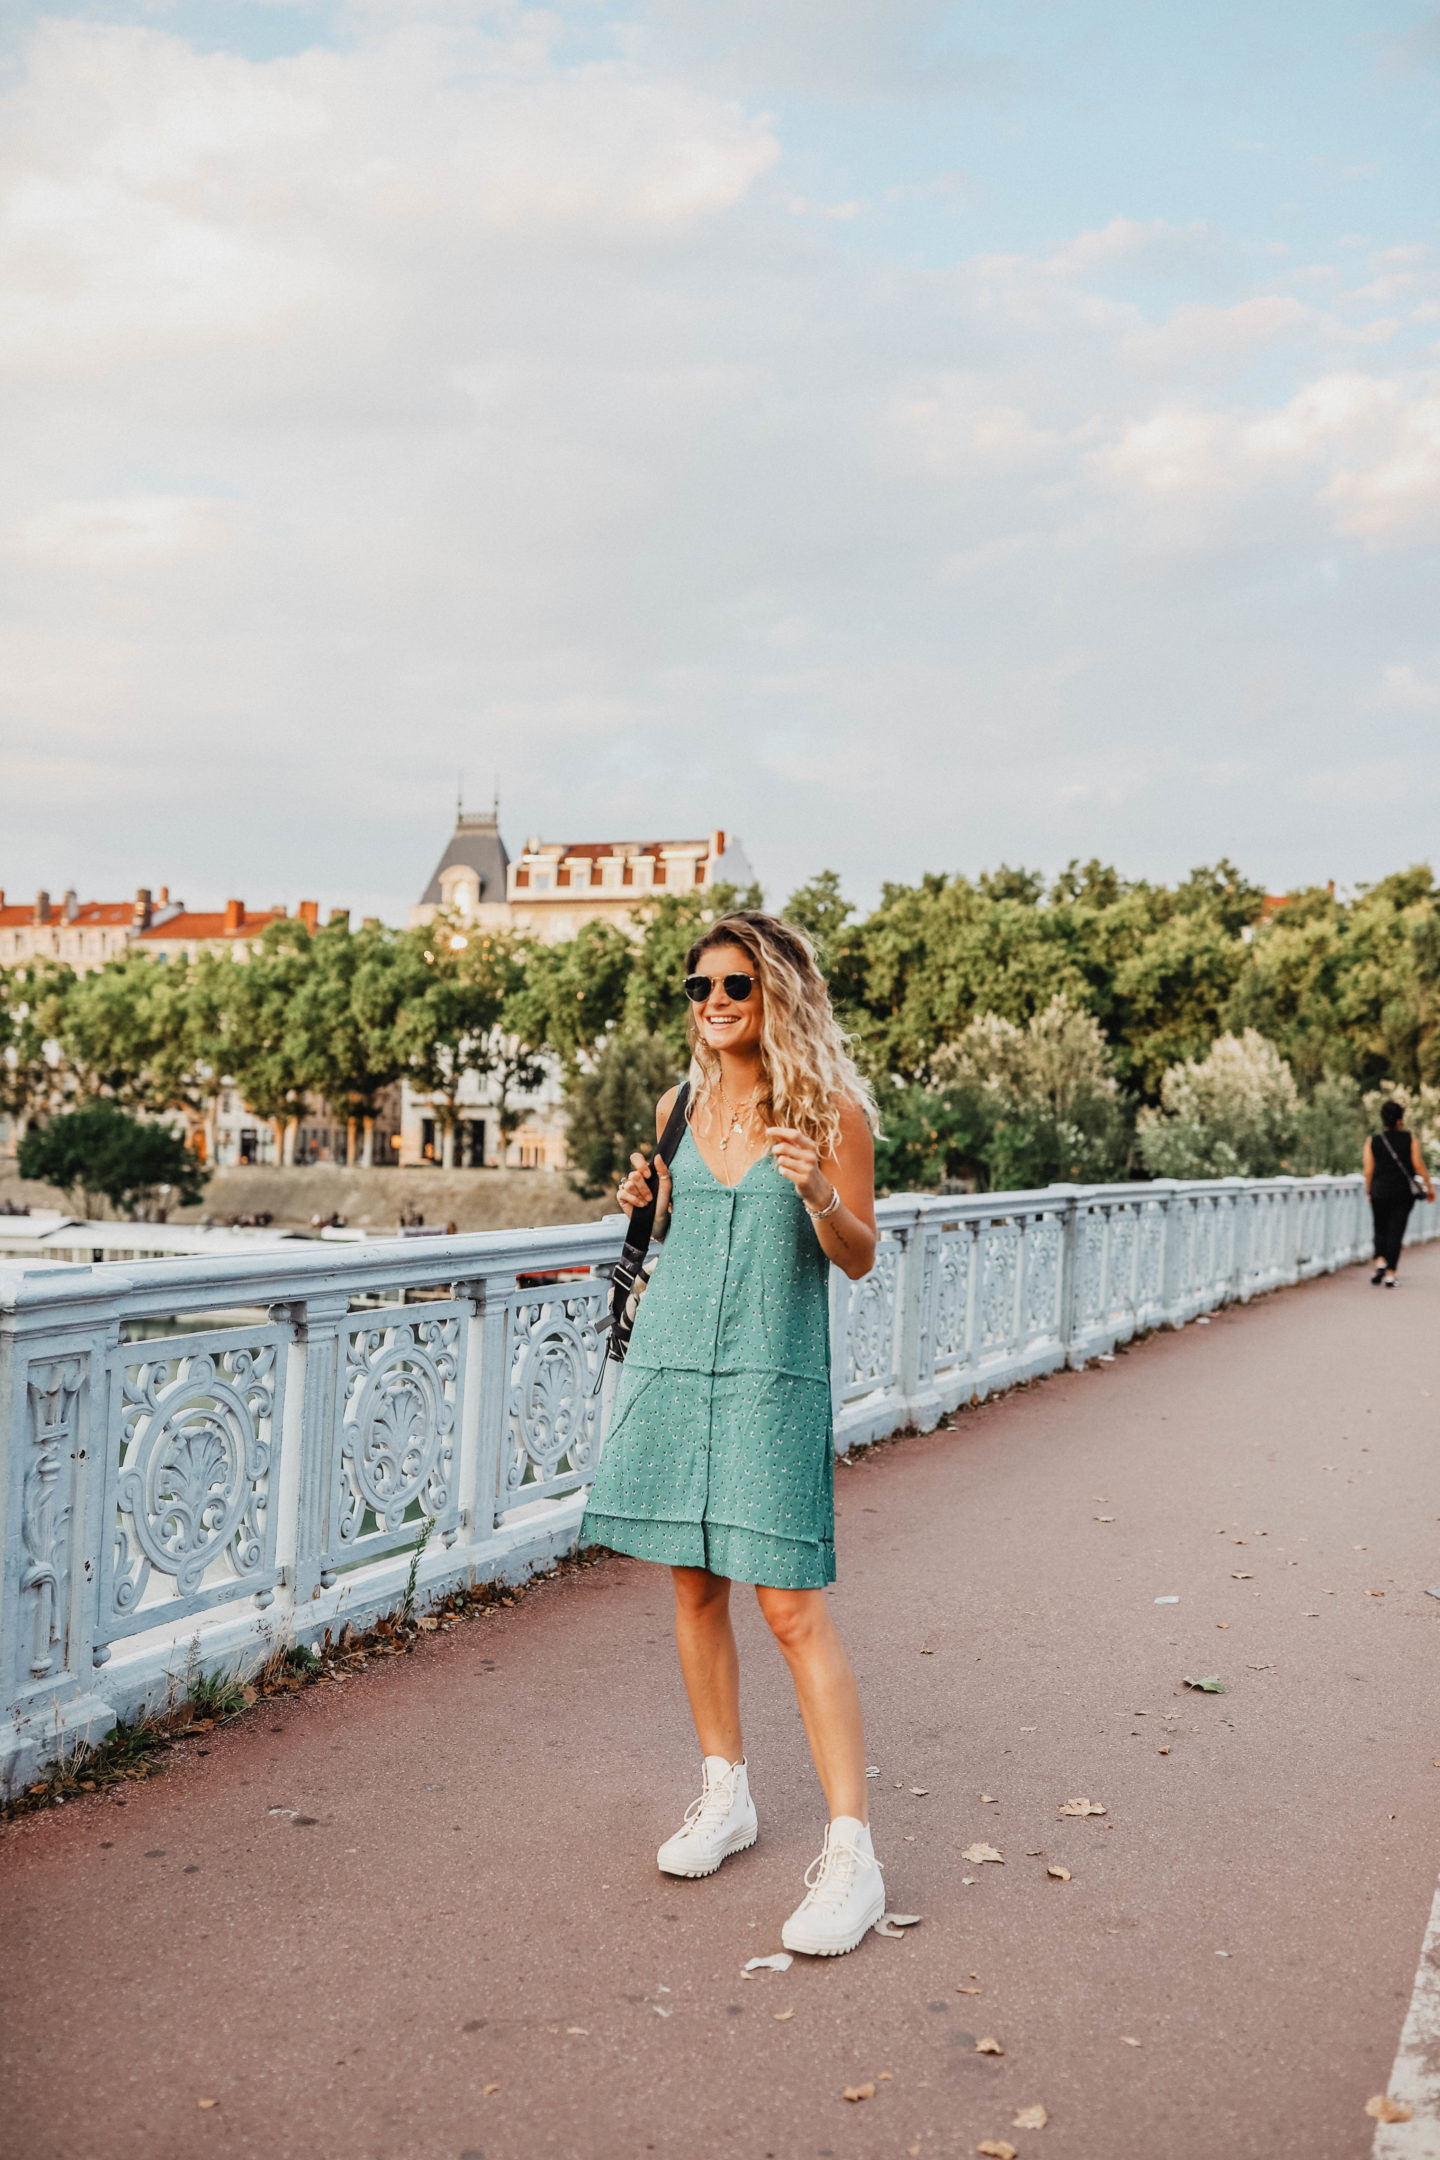 MarieandMood influencer Lyon Paris